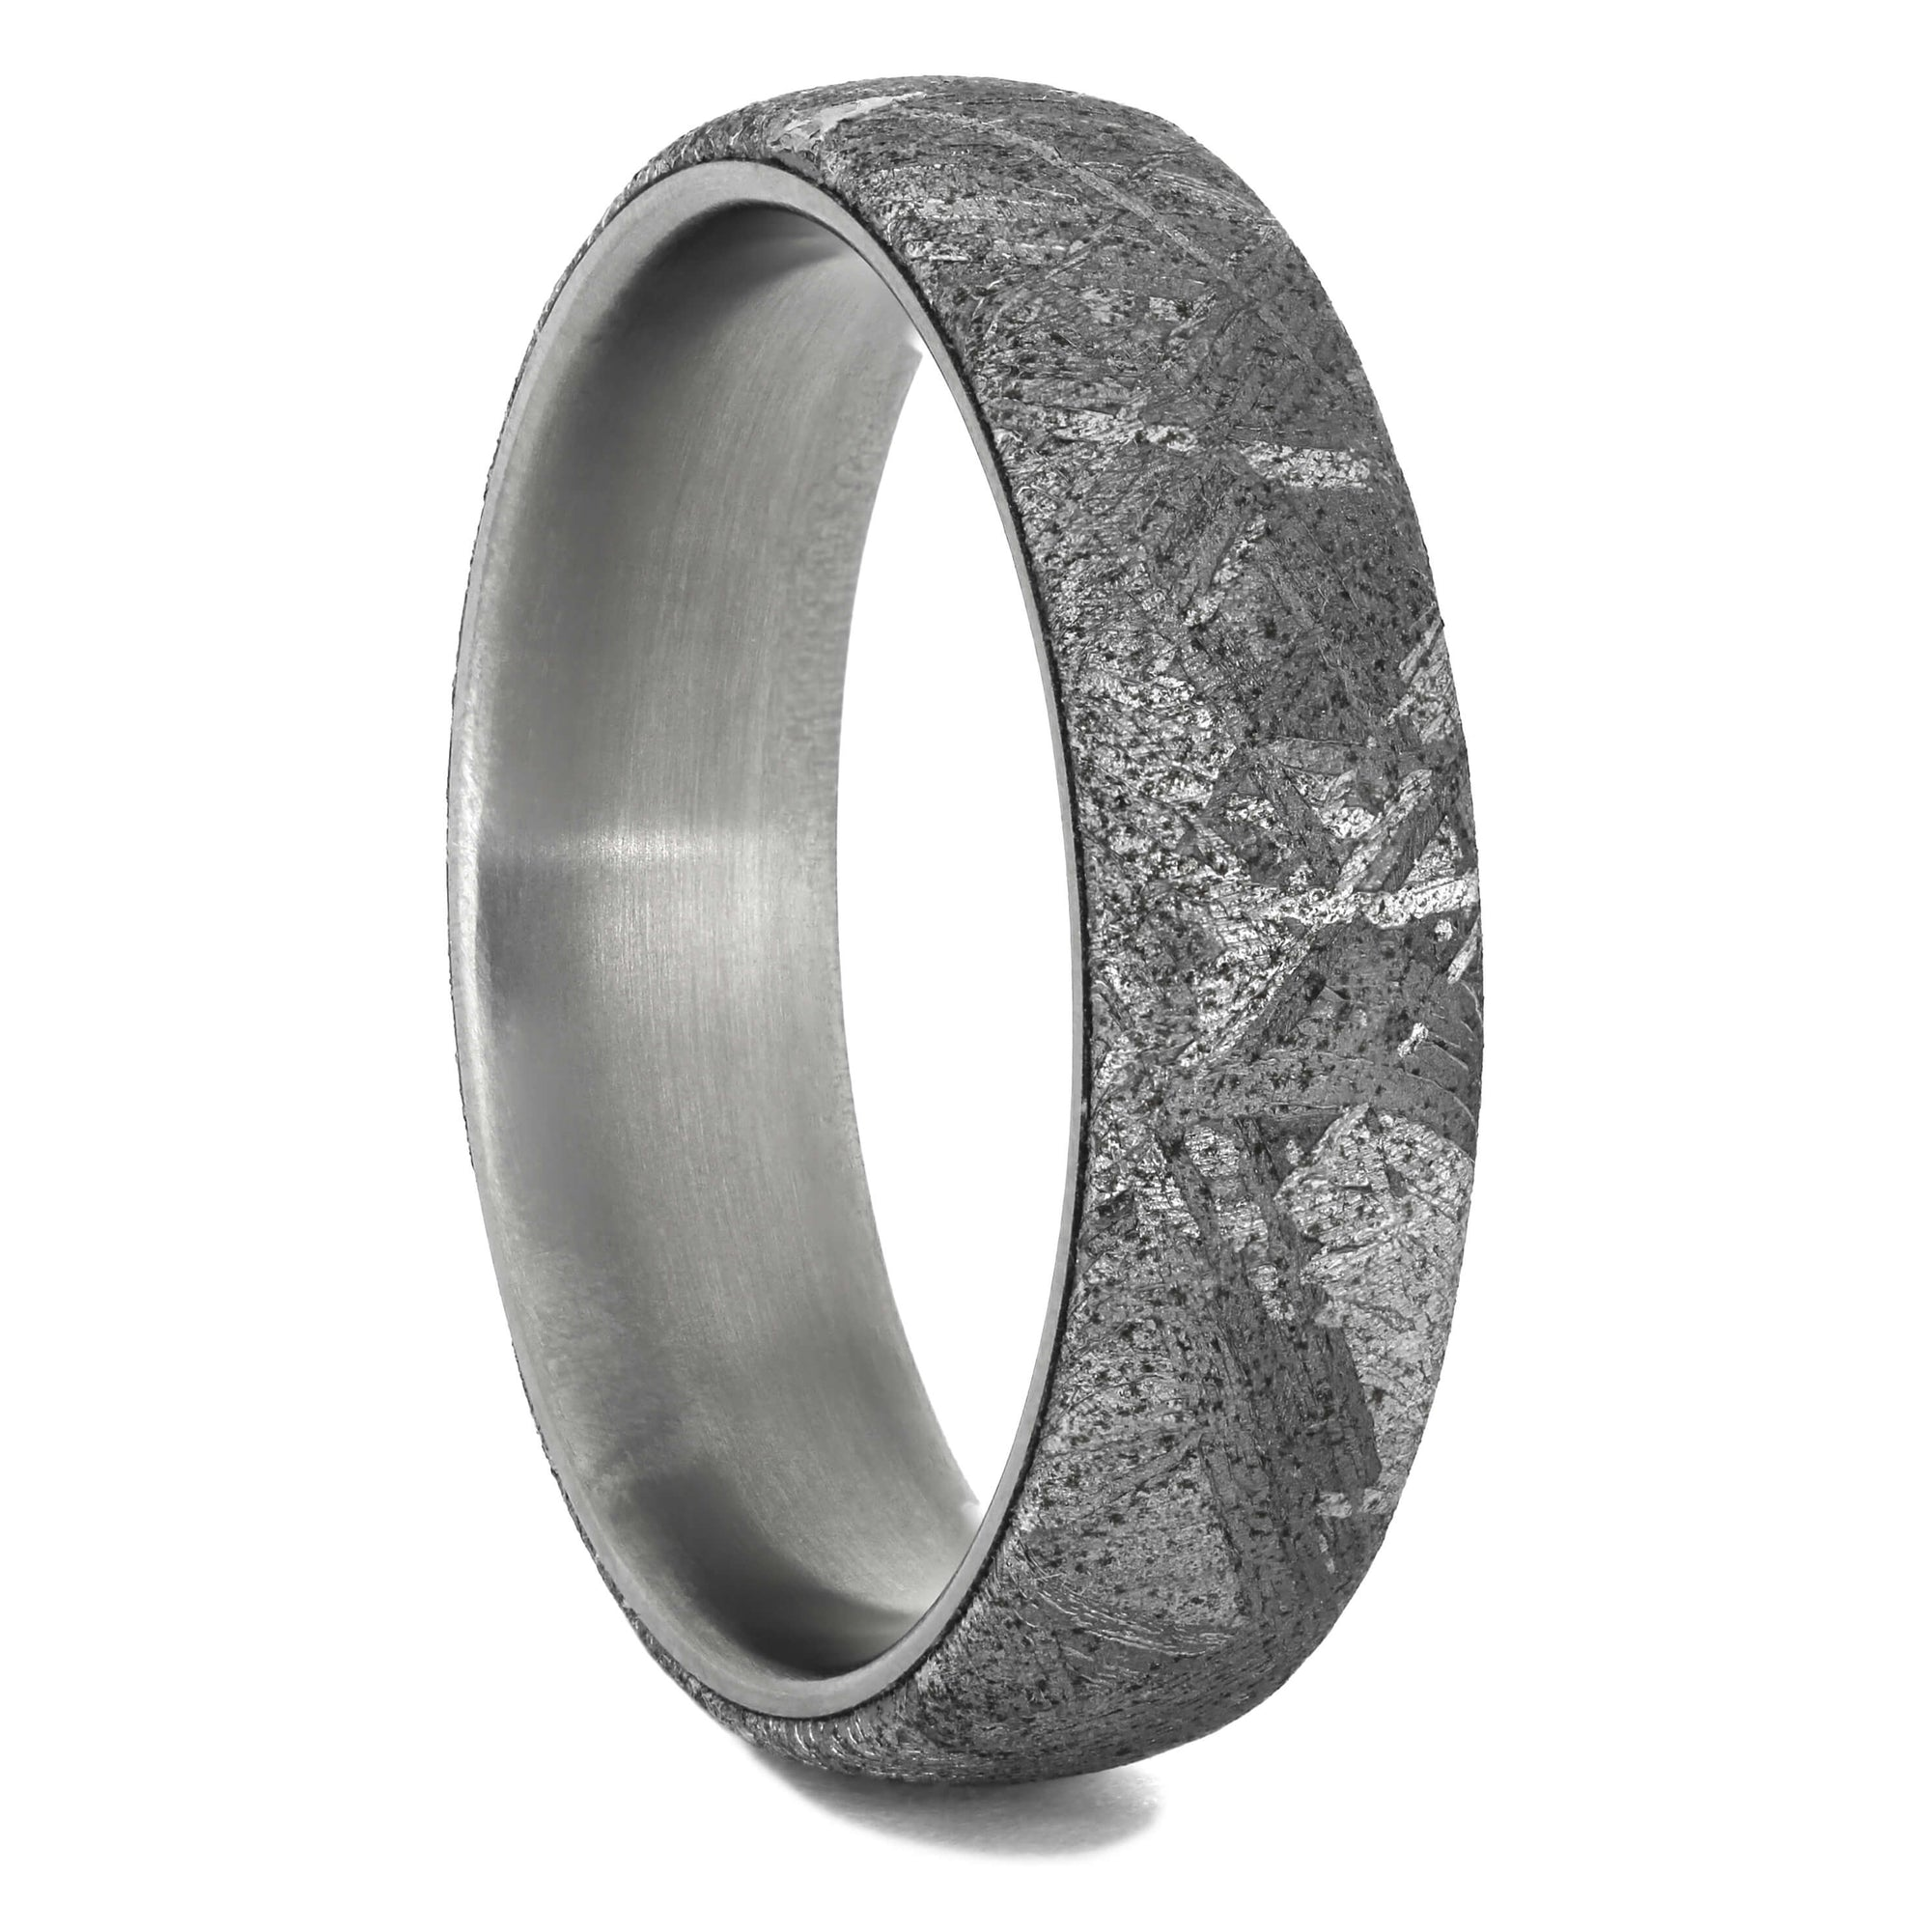 Meteorite Wedding Band With Round Profile, Size 10.25-RS10949 - Jewelry by Johan